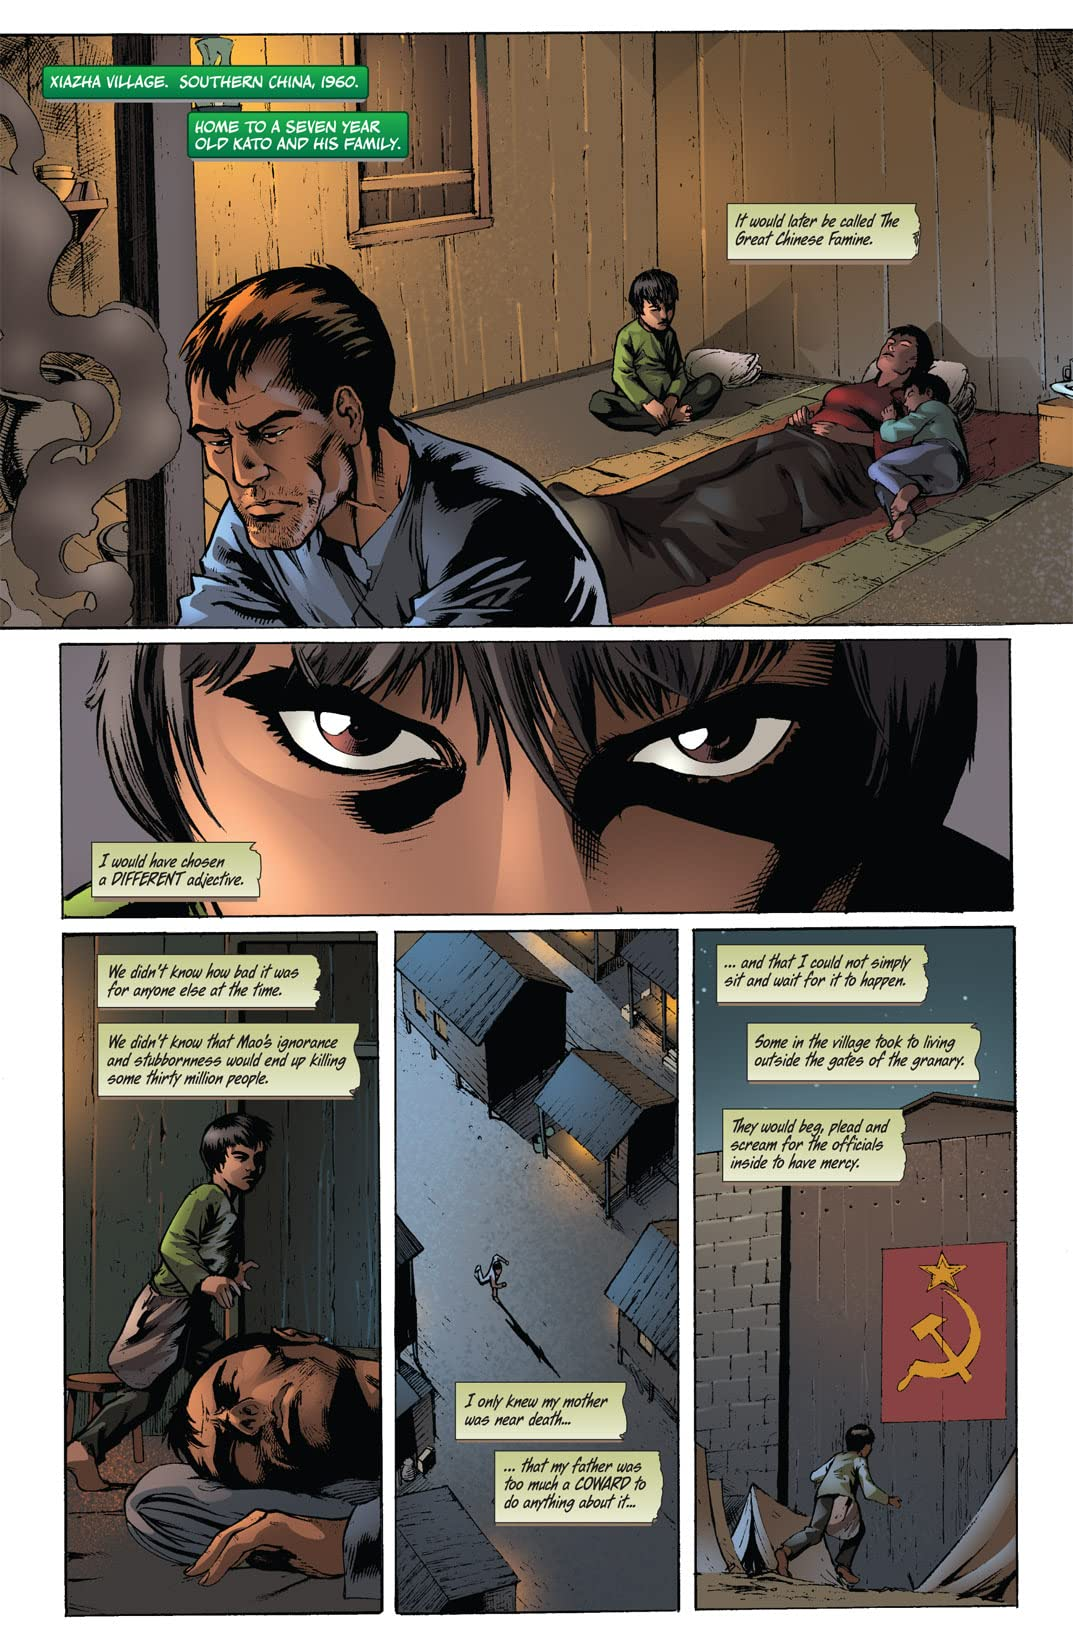 Kevin Smith's Kato #3